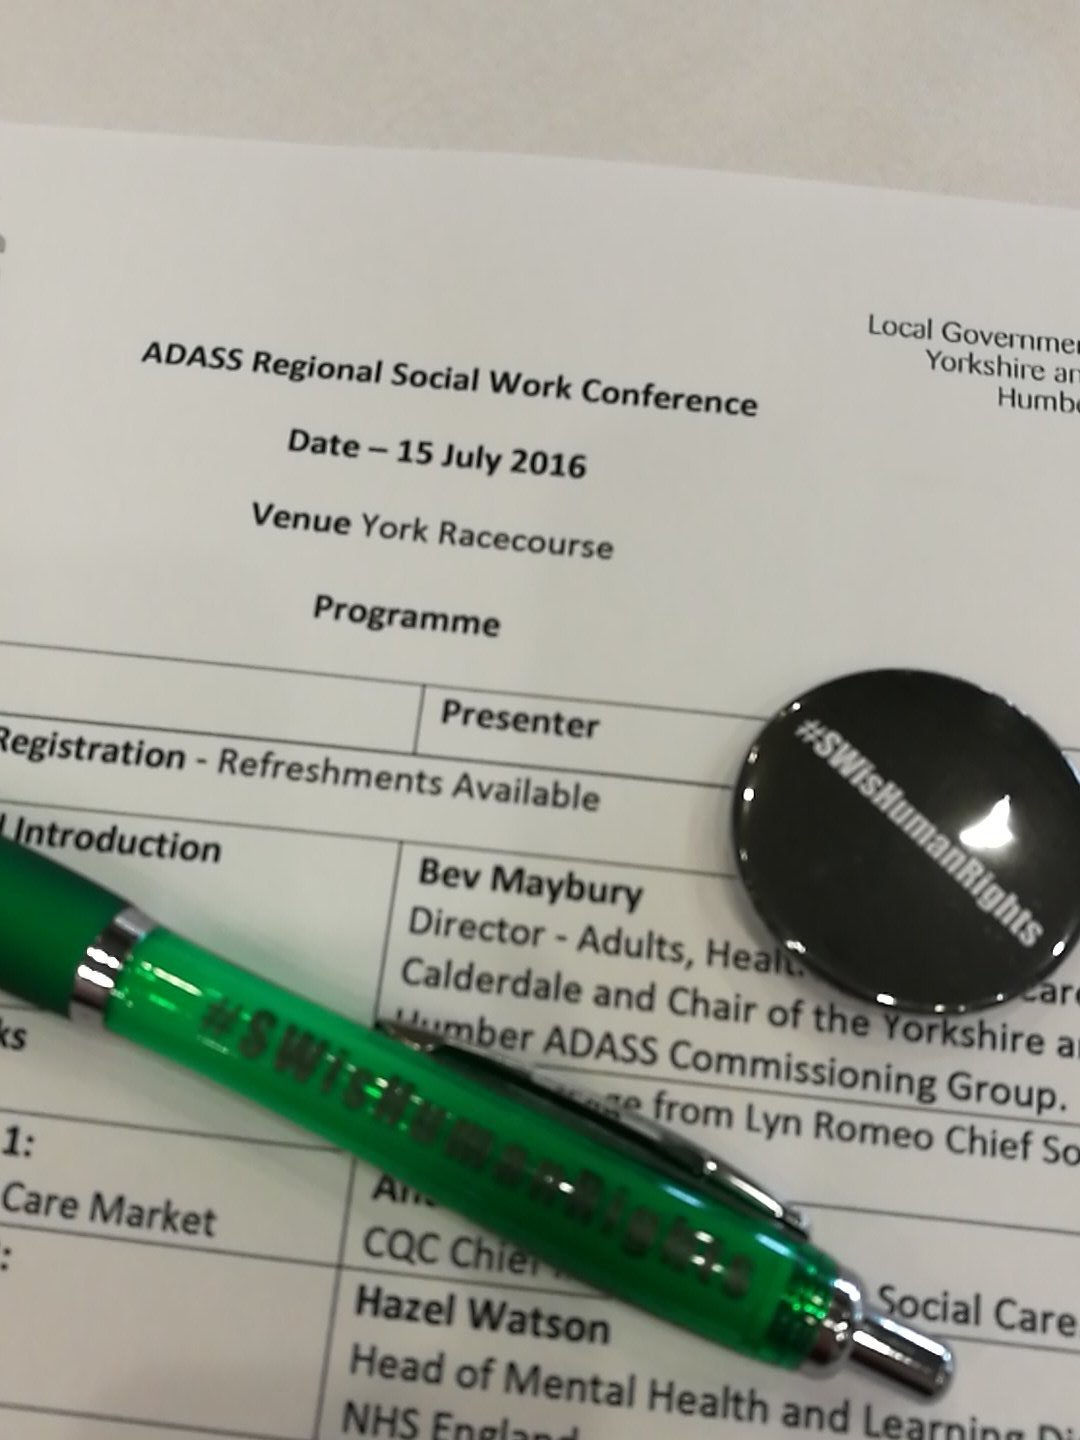 Looking forward to a great day at the ADASS regional conference. #SWisHumanRights https://t.co/40p3G4zYfA